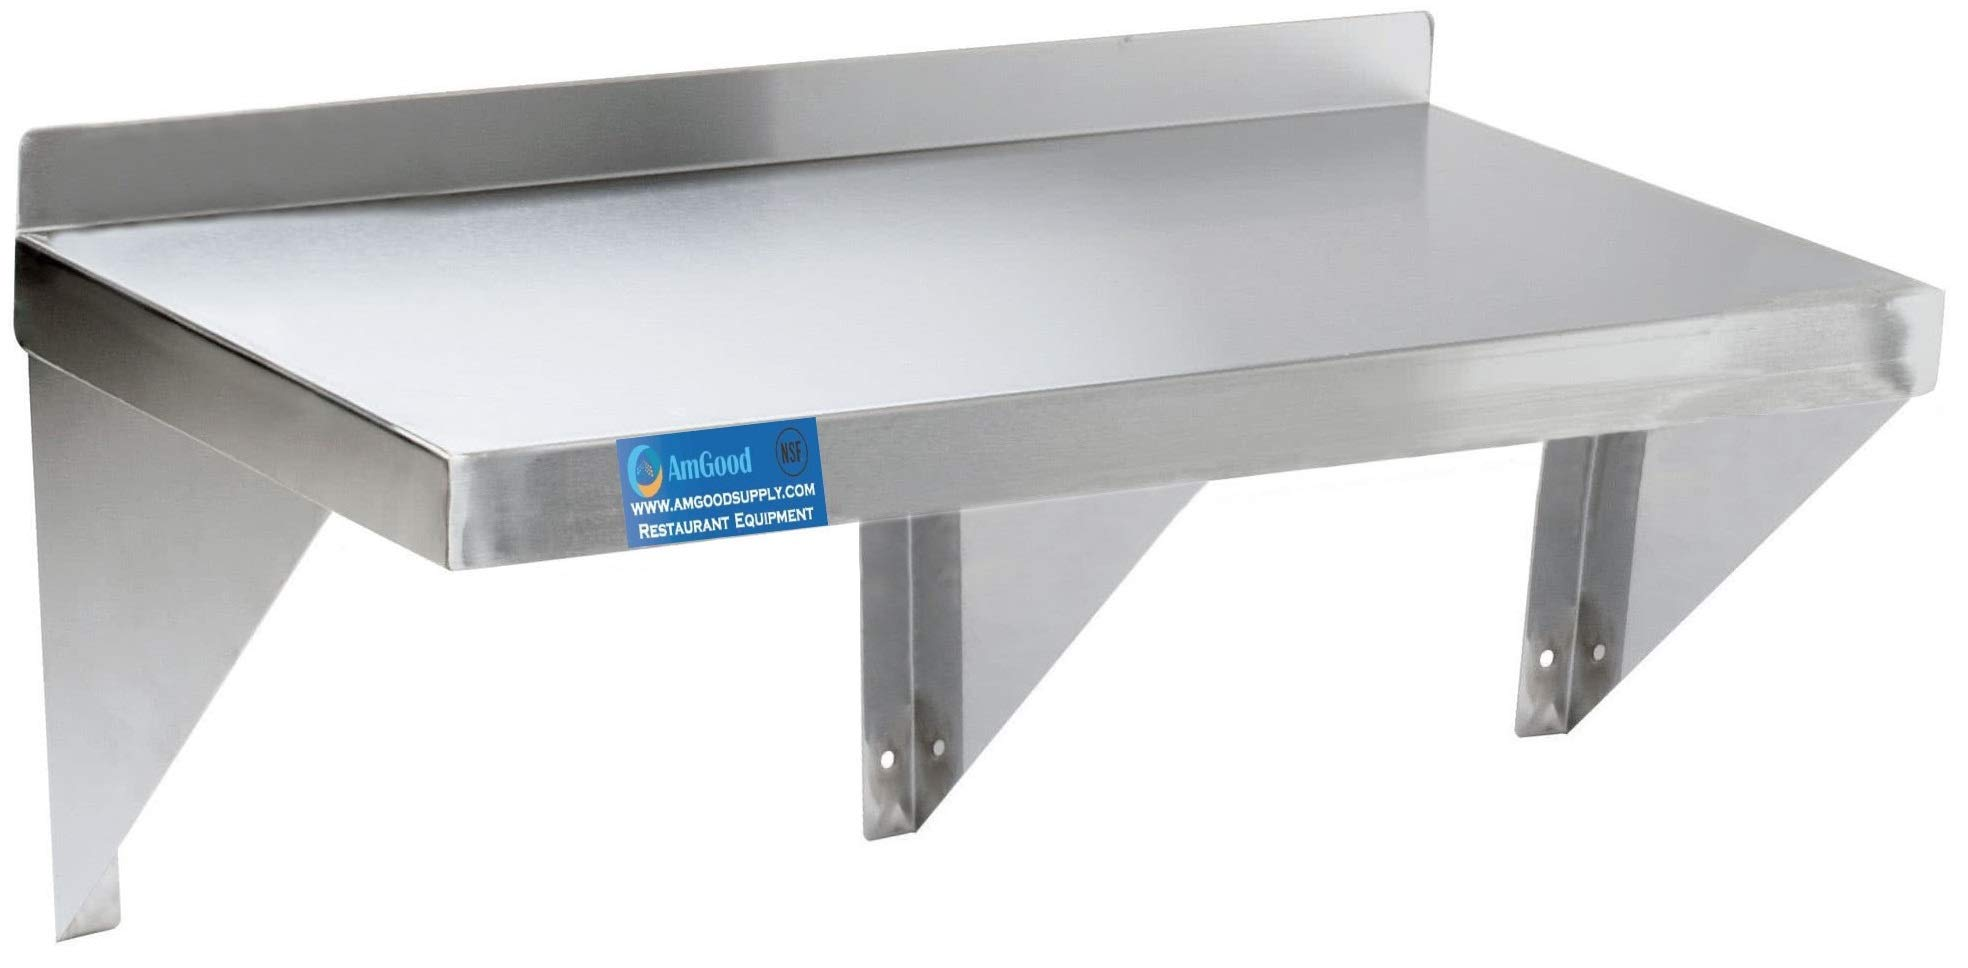 AmGood 12'' x 72'' Stainless Steel Wall Shelf | Appliance & Equipment Metal Shelving | Kitchen, Restaurant, Garage, Laundry, Utility Room | Heavy Duty | Squared Edge | NSF Certified by AmGood